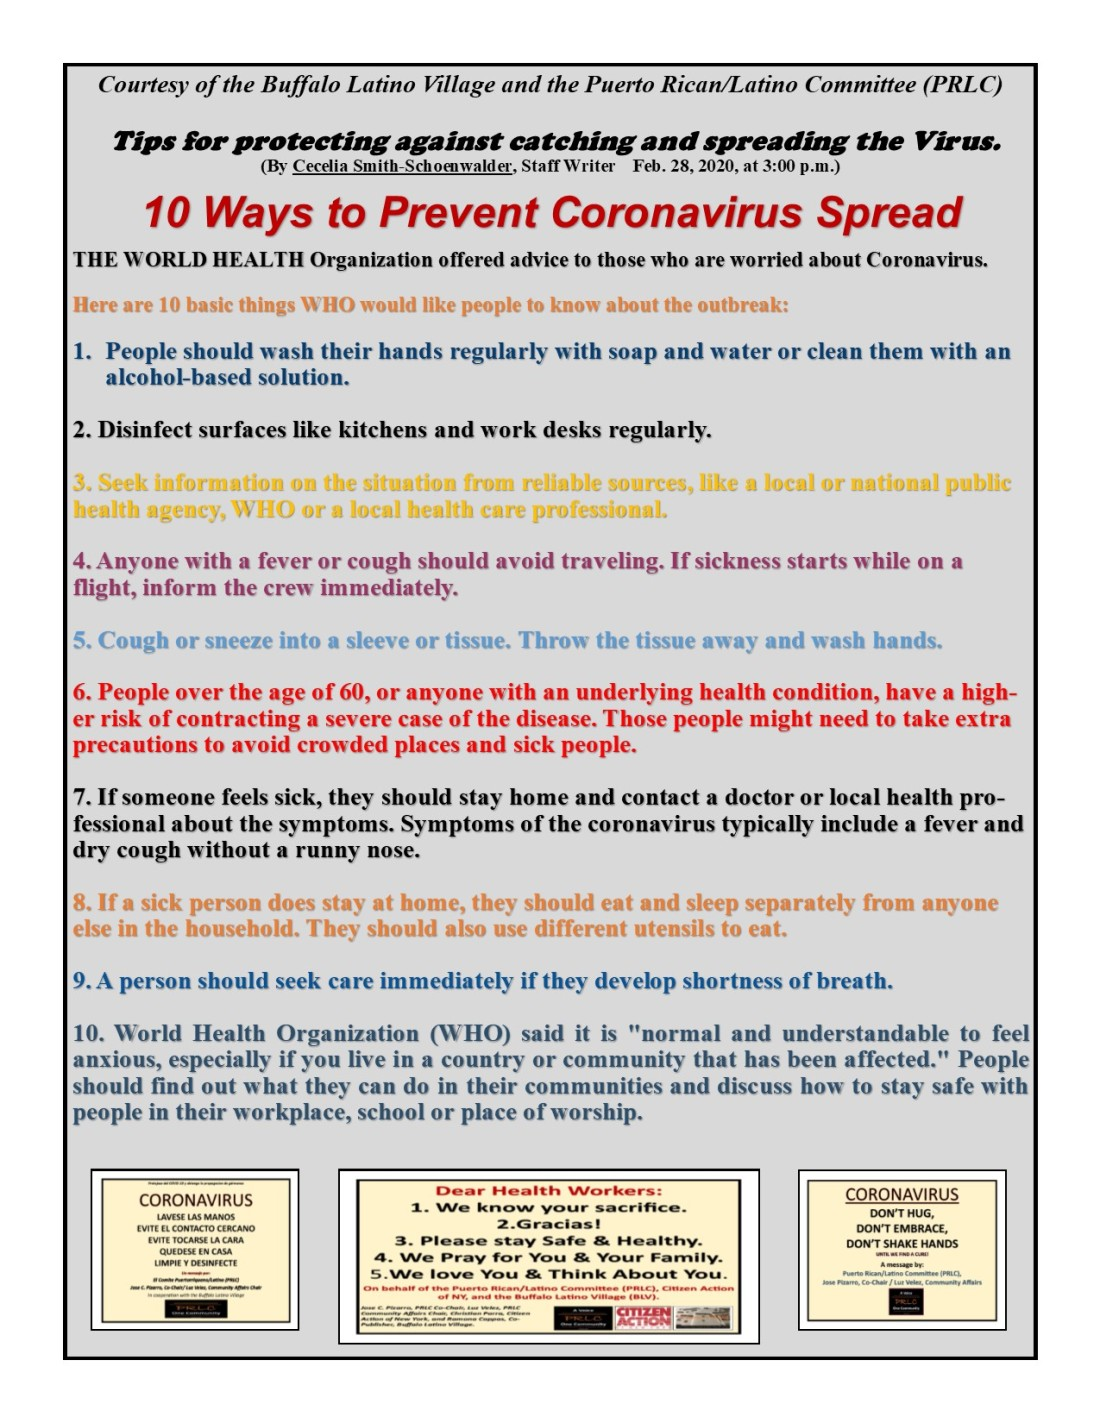 Ten Ways to stay safe from the coronavirus